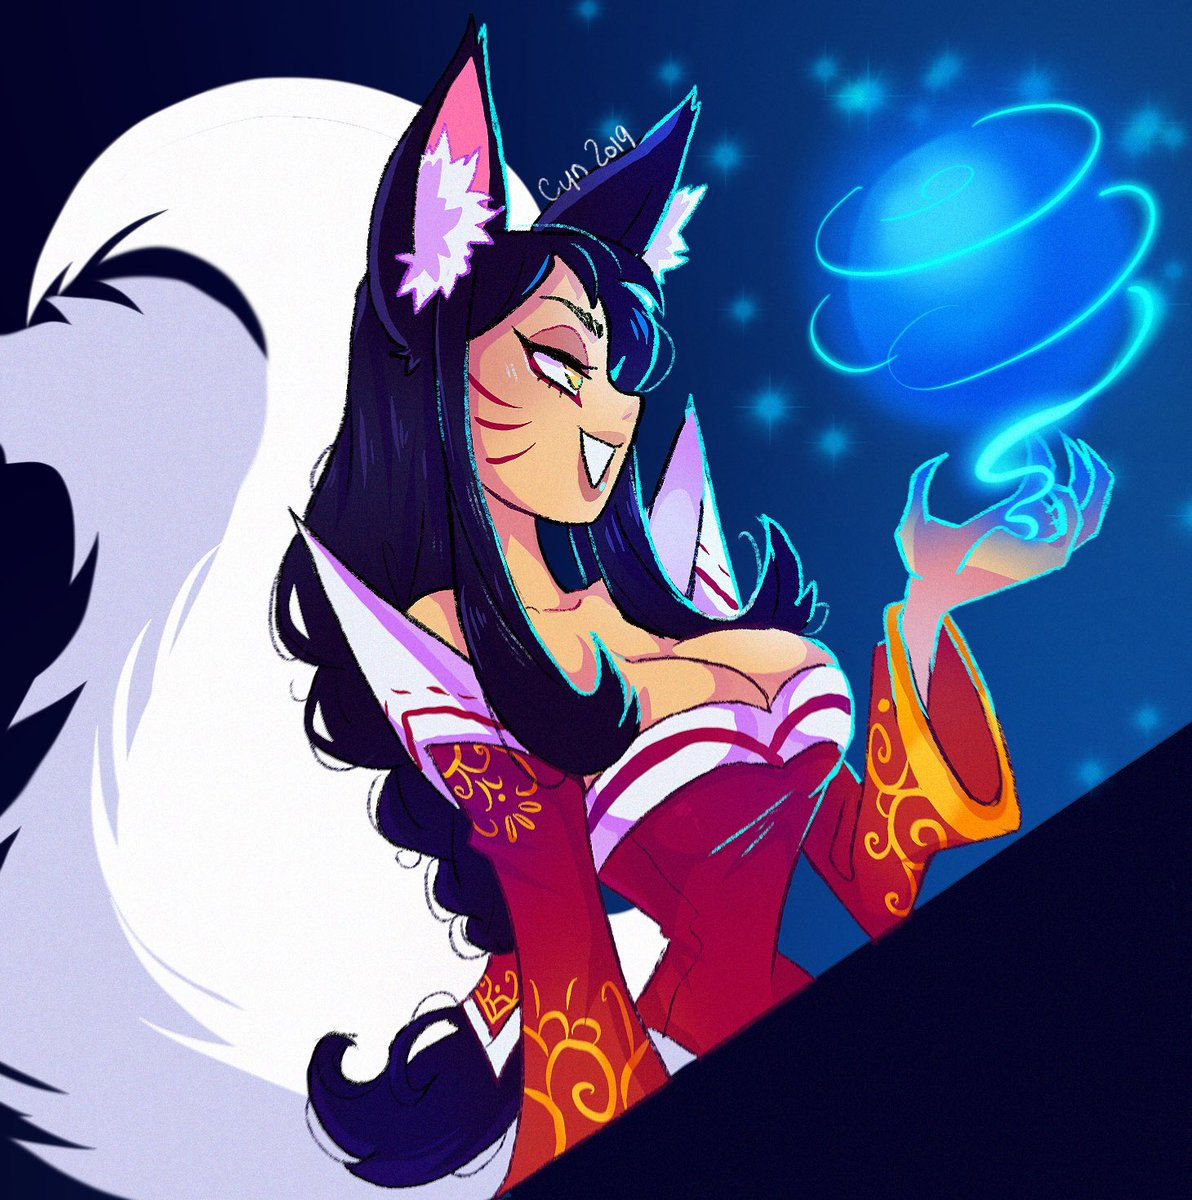 I haven't drawn Ahri in a while and wanted to fix that! #LeagueOfLegends #ArtofLegends<br>http://pic.twitter.com/7pyyiJLO1W